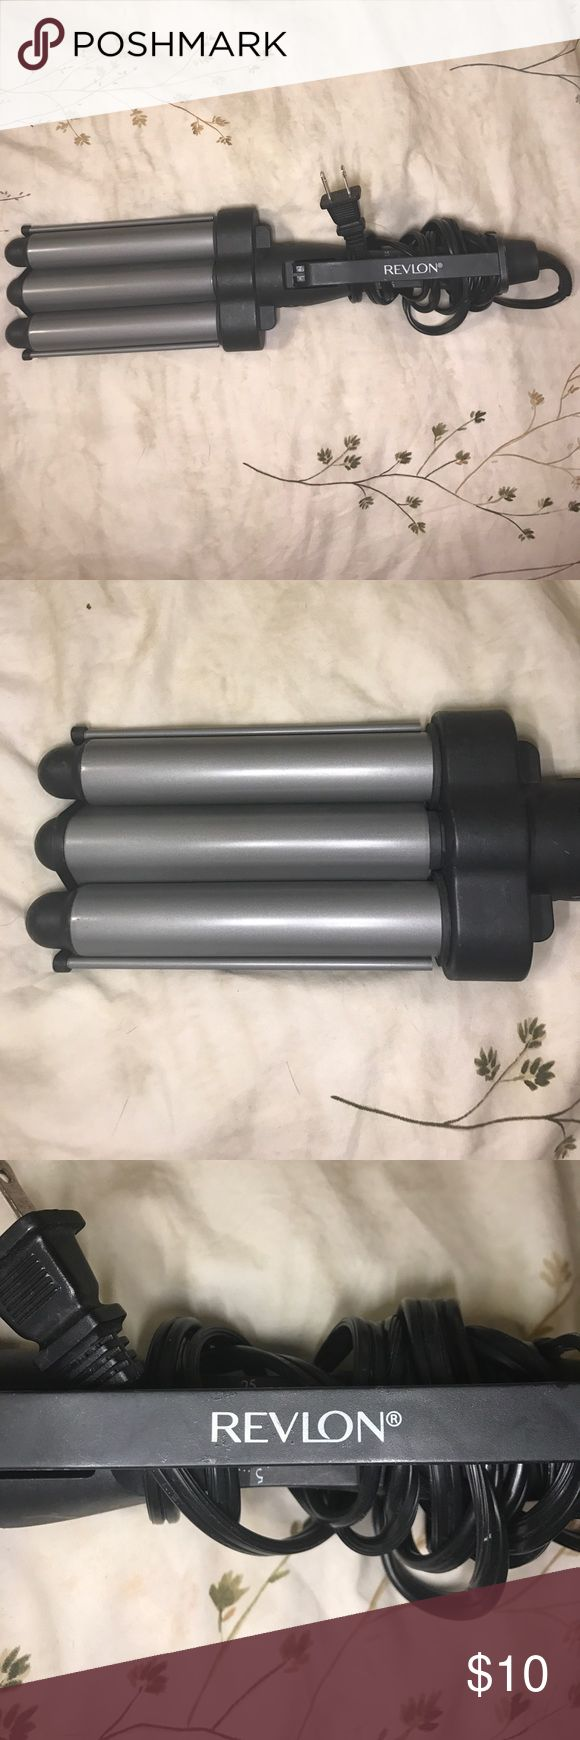 REVLON hair crimper Excellent condition. Like new. Used once. Price is firm. Revlon Accessories Hair Accessories